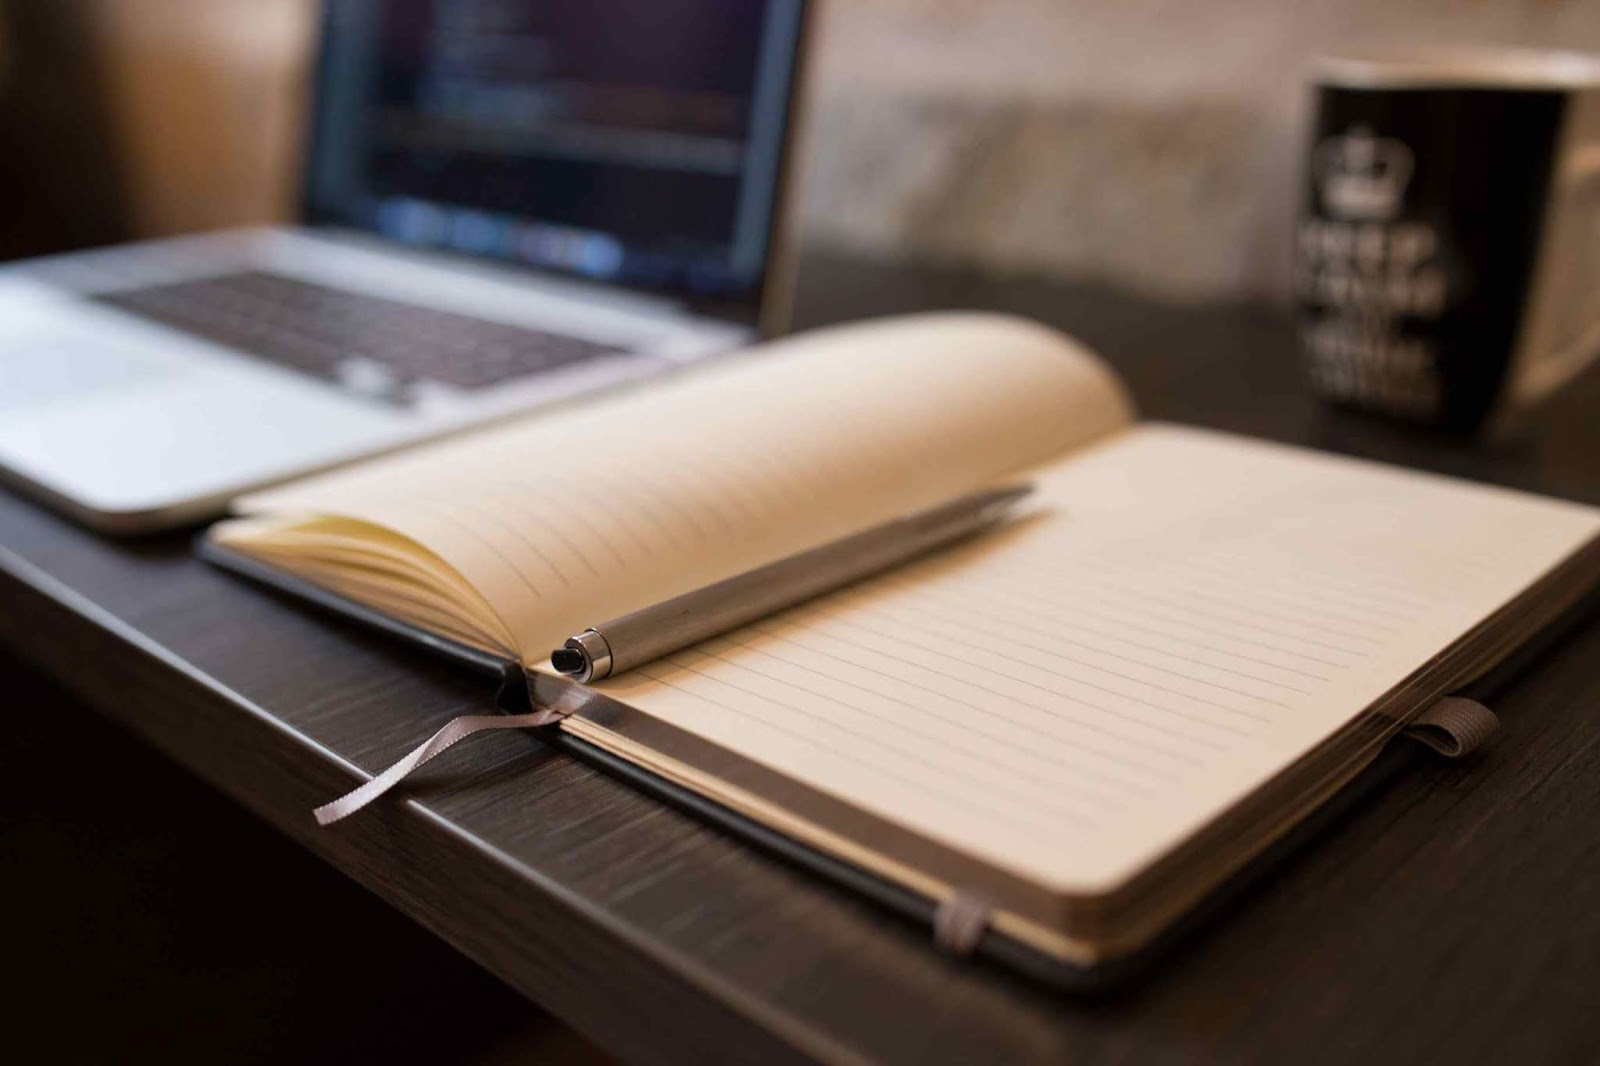 Photo of a notebook and pen with a laptop in the background